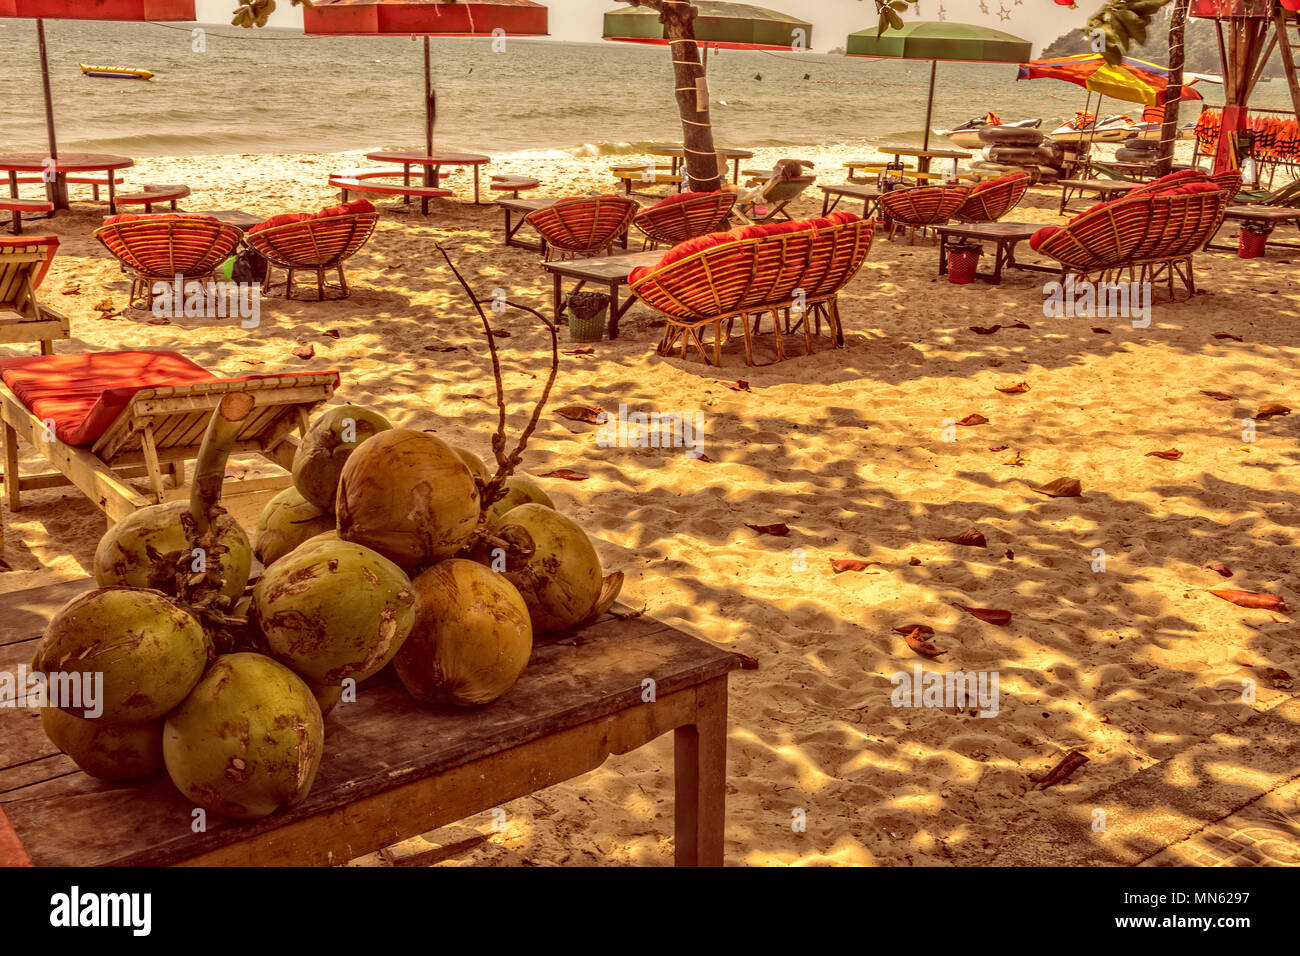 cocos sun sand and turquoise sea on the ochheuteal tourist beach near the city of Sihanoukville. Cambodia - Stock Image